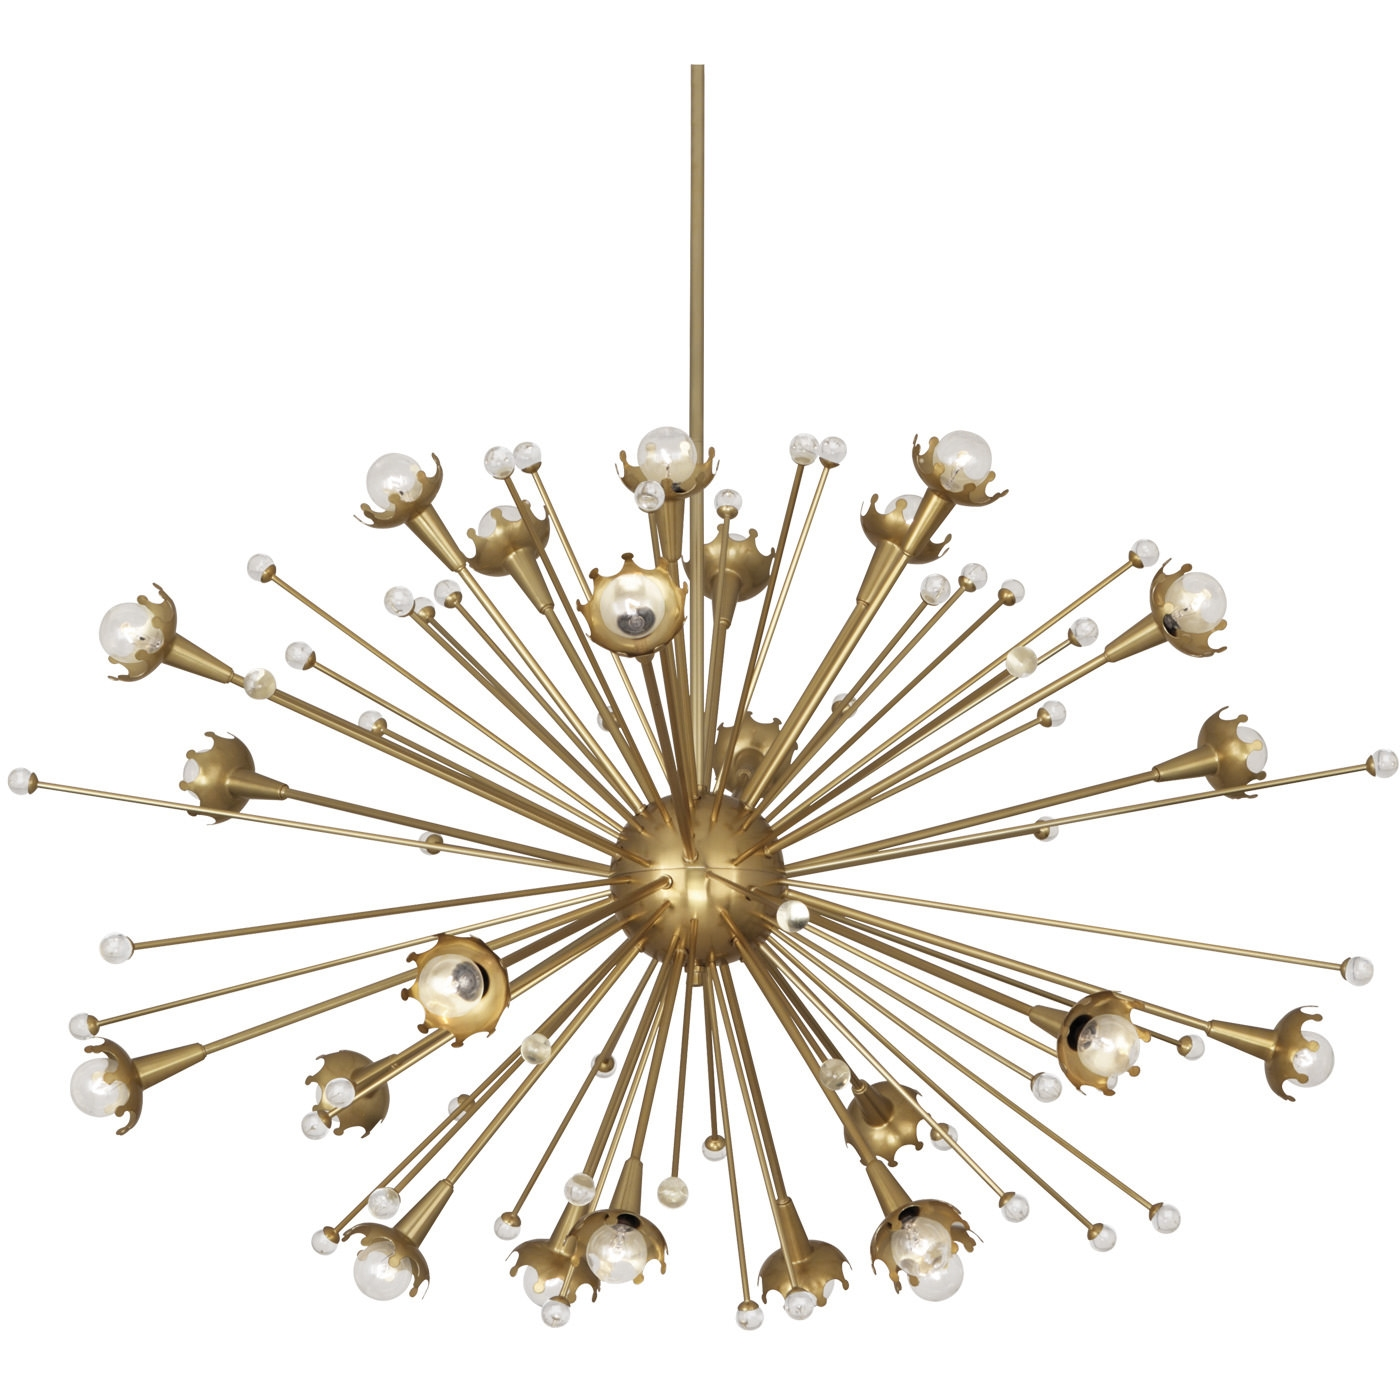 Giant Sputnik Chandelier Modern Lighting Jonathan Adler Throughout Mini Sputnik Chandeliers (Image 10 of 25)